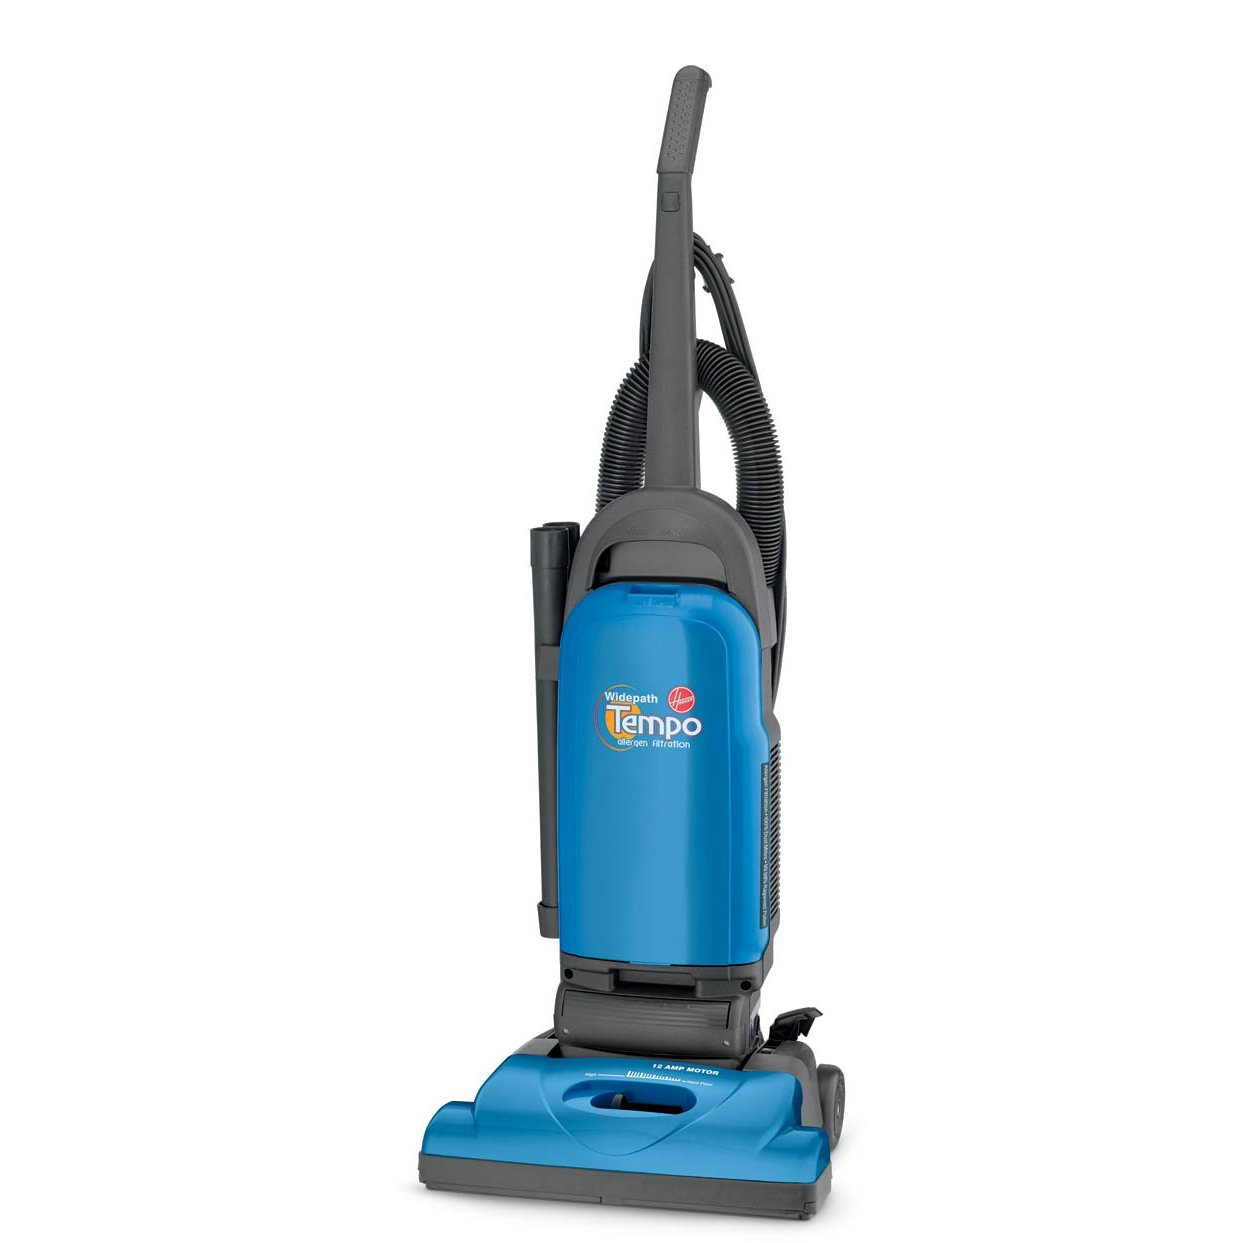 Hoover_Tempo_Widepath_Upright_Vacuum_Bagged_U5140-900